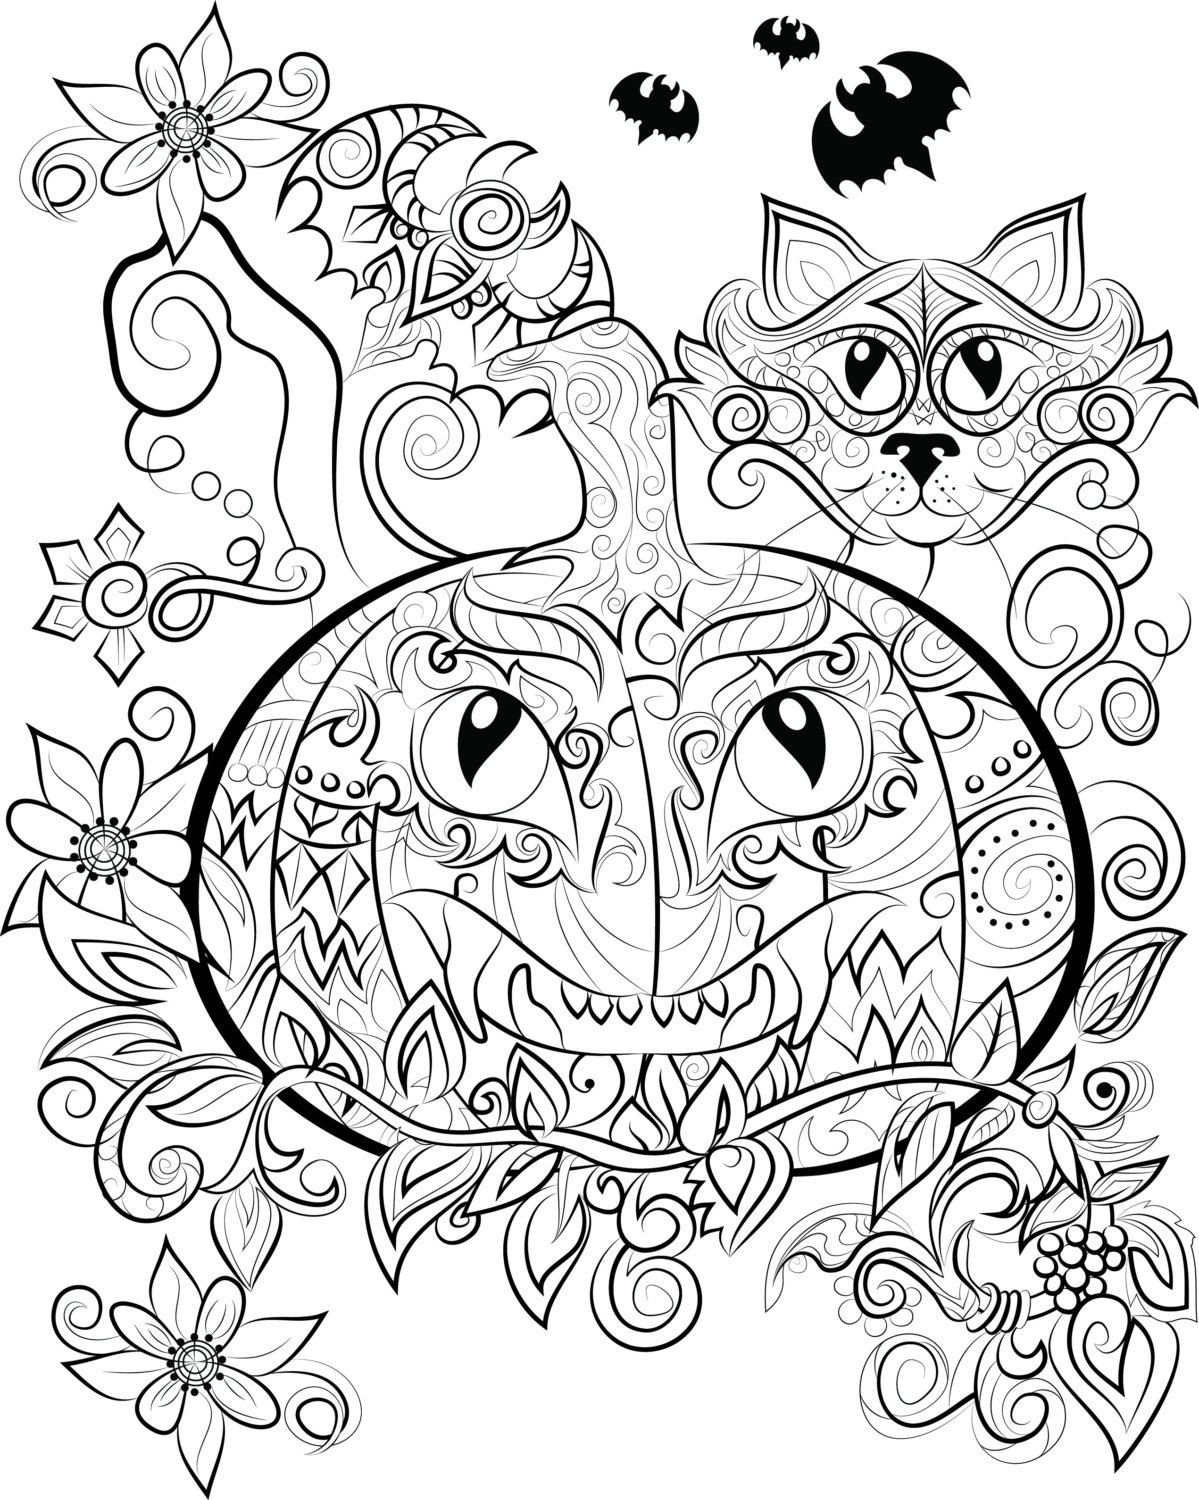 Halloween Colouring Page Instant Download To Print And Colour By Chandraws On Etsy Halloween Coloring Halloween Coloring Pages Halloween Coloring Book